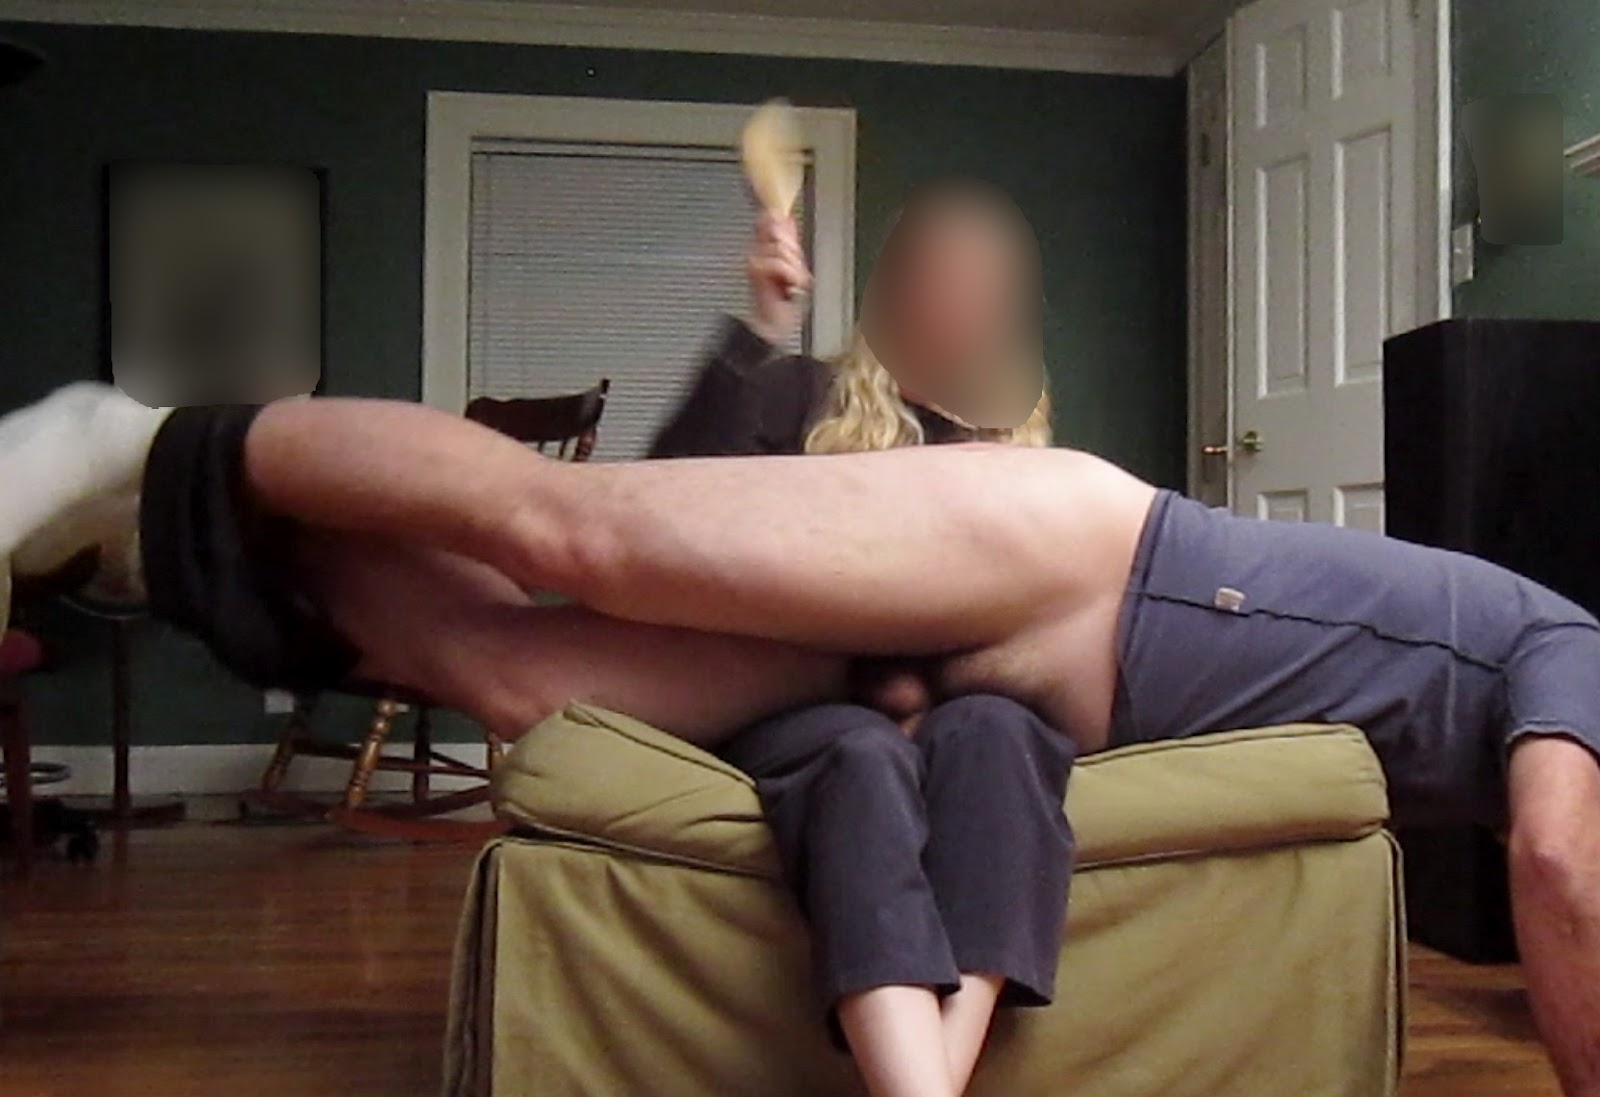 Strict Julie Spanks!: An Epic Spanking for my Husband